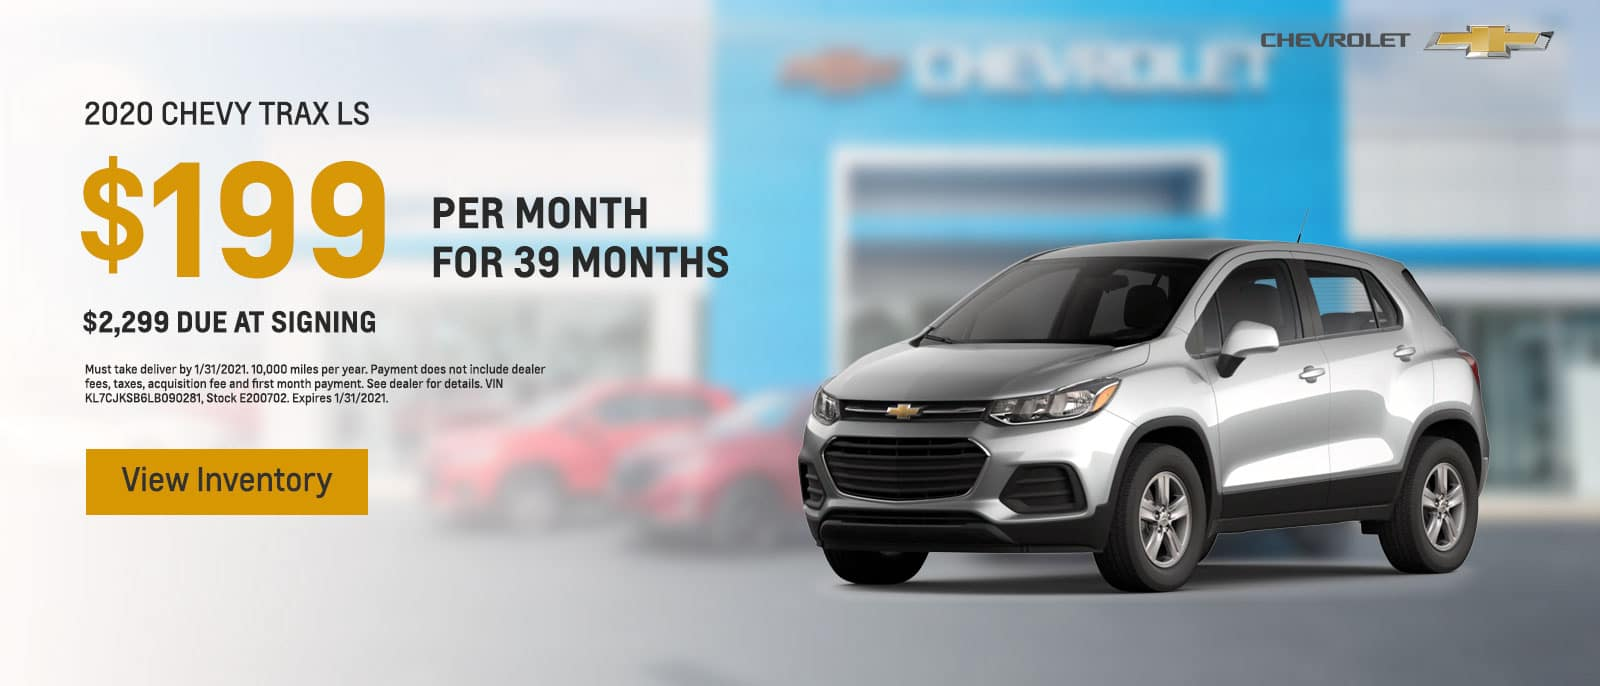 2020 Chevy Trax LS Lease $199/mo